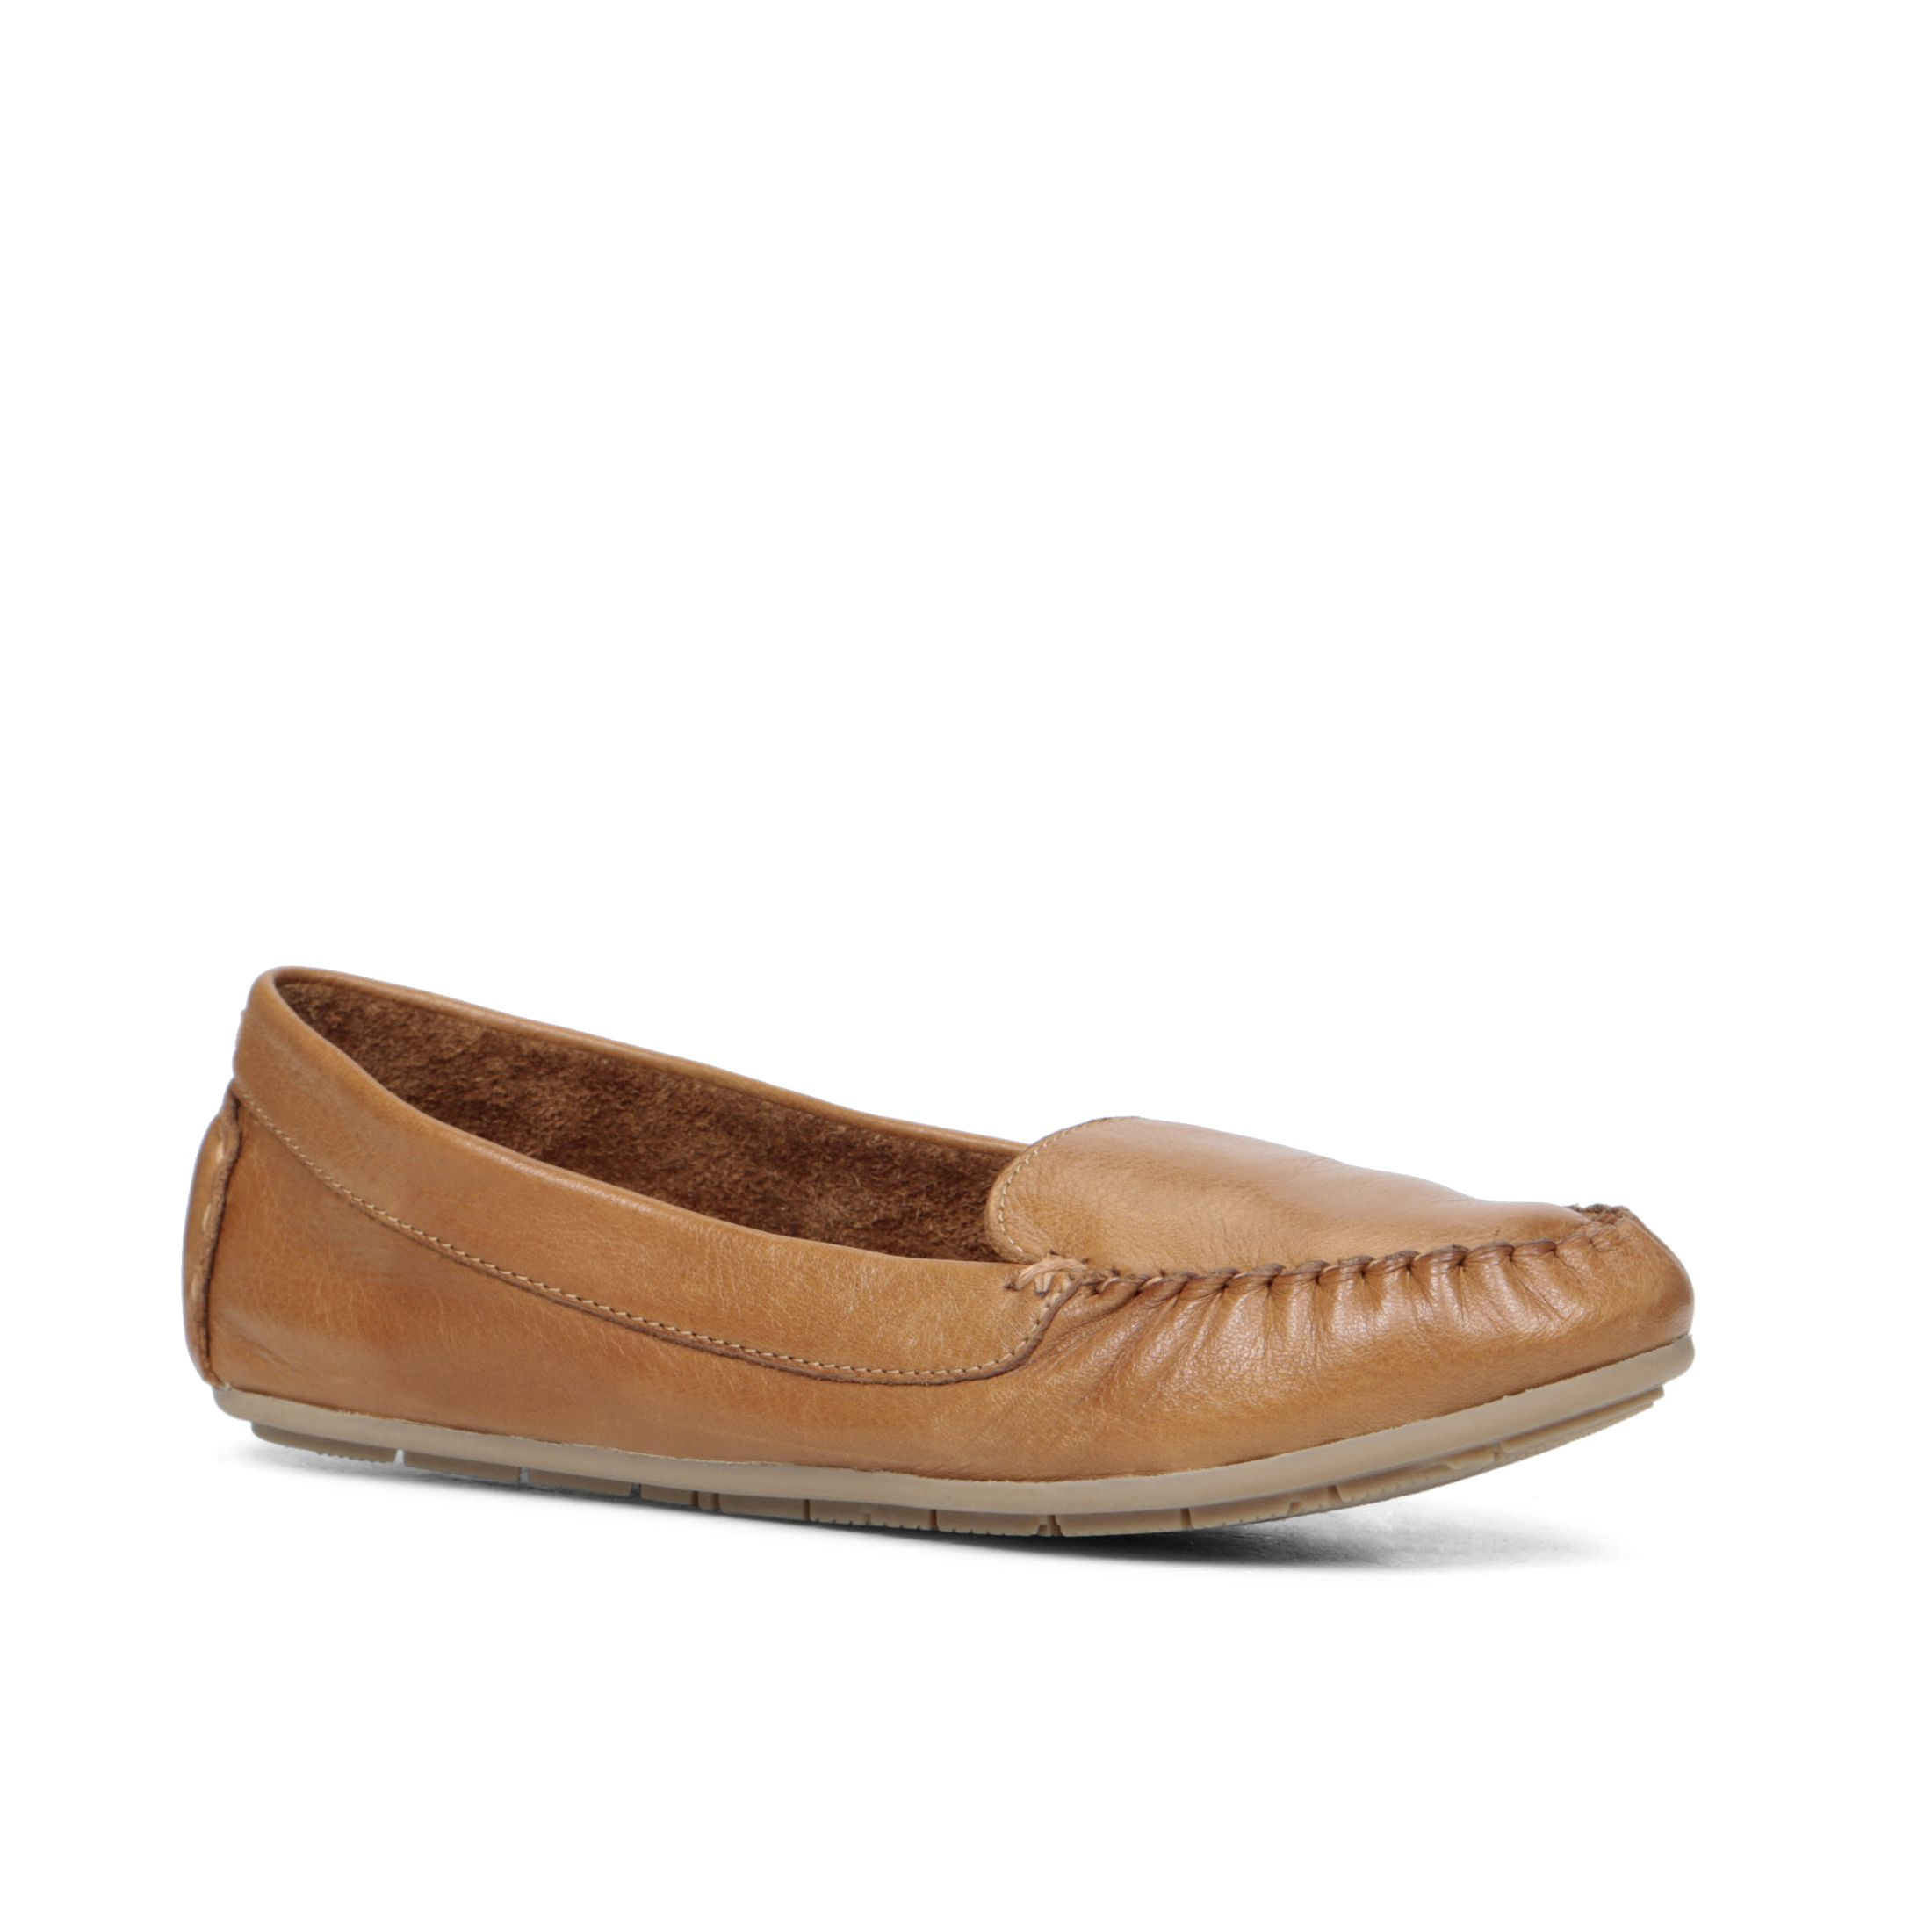 Women's ALDO Loafers and moccasins Aldo is a renowned international footwear label first founded in Montreal, Canada in 'where it is still based today. For more than 40 years it has been creating high-quality, fashion-focused footwear on the basis of integrity and respect for the customer, and today those values are instilled in a broad.